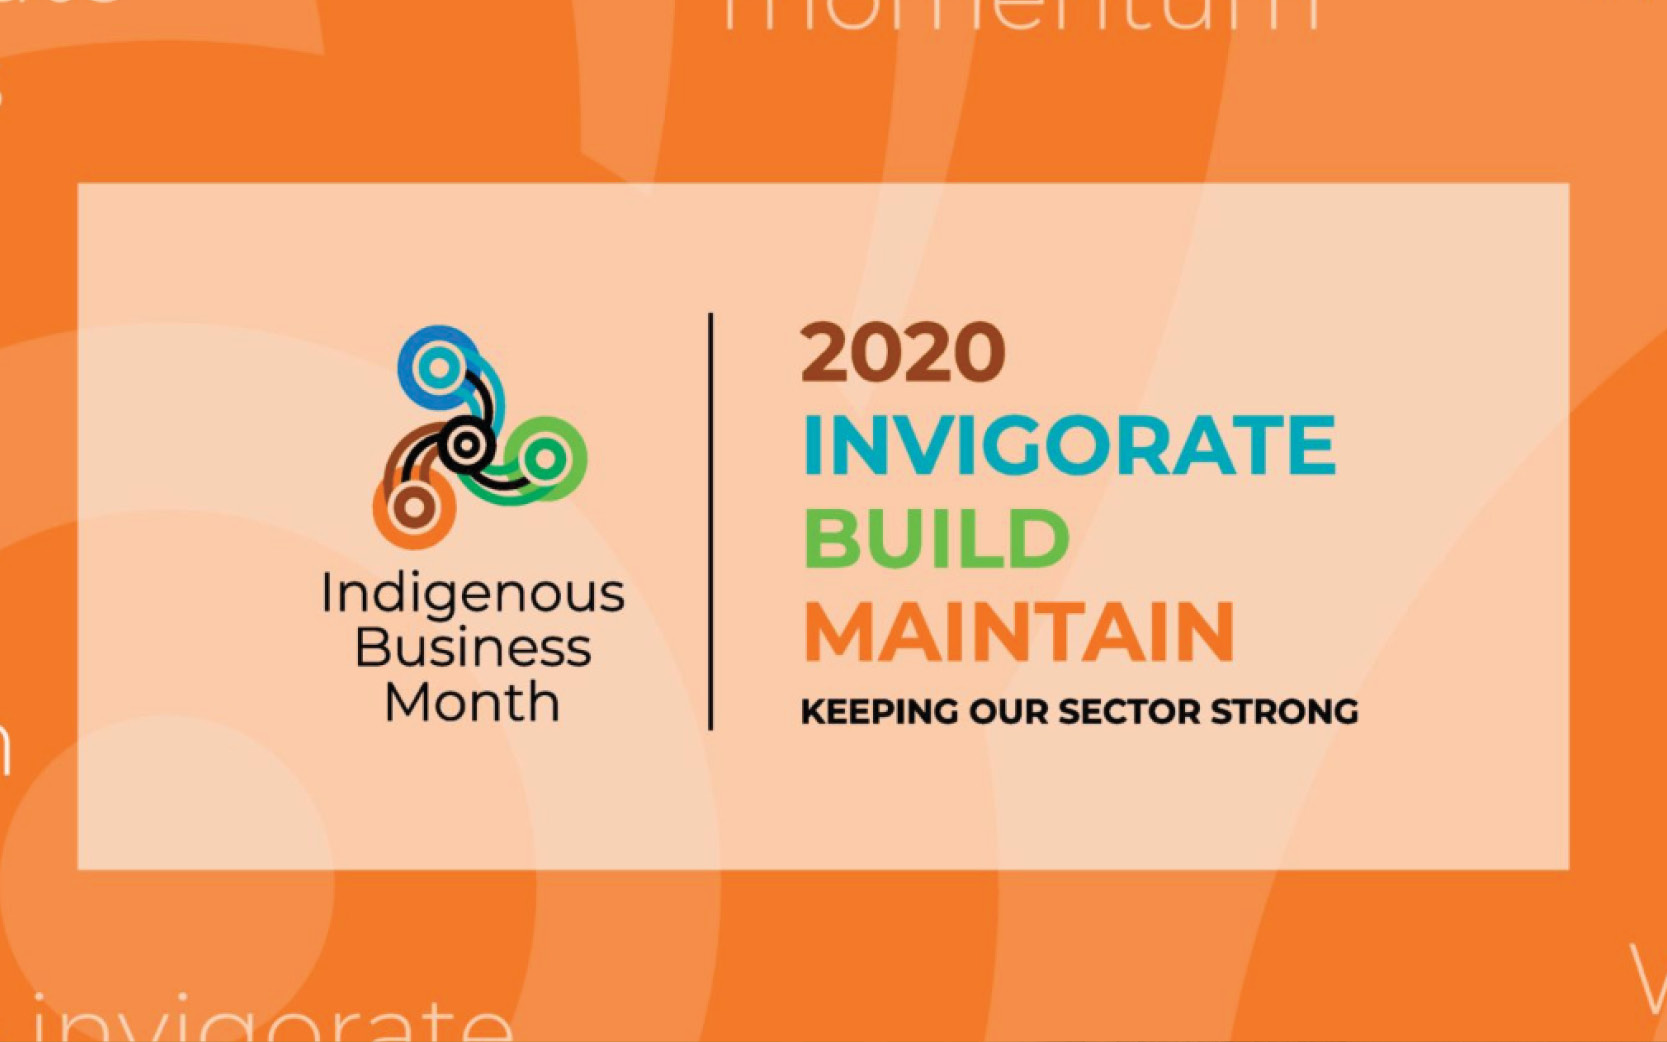 Indigenous Business Month 2020 - Multhana Property Services